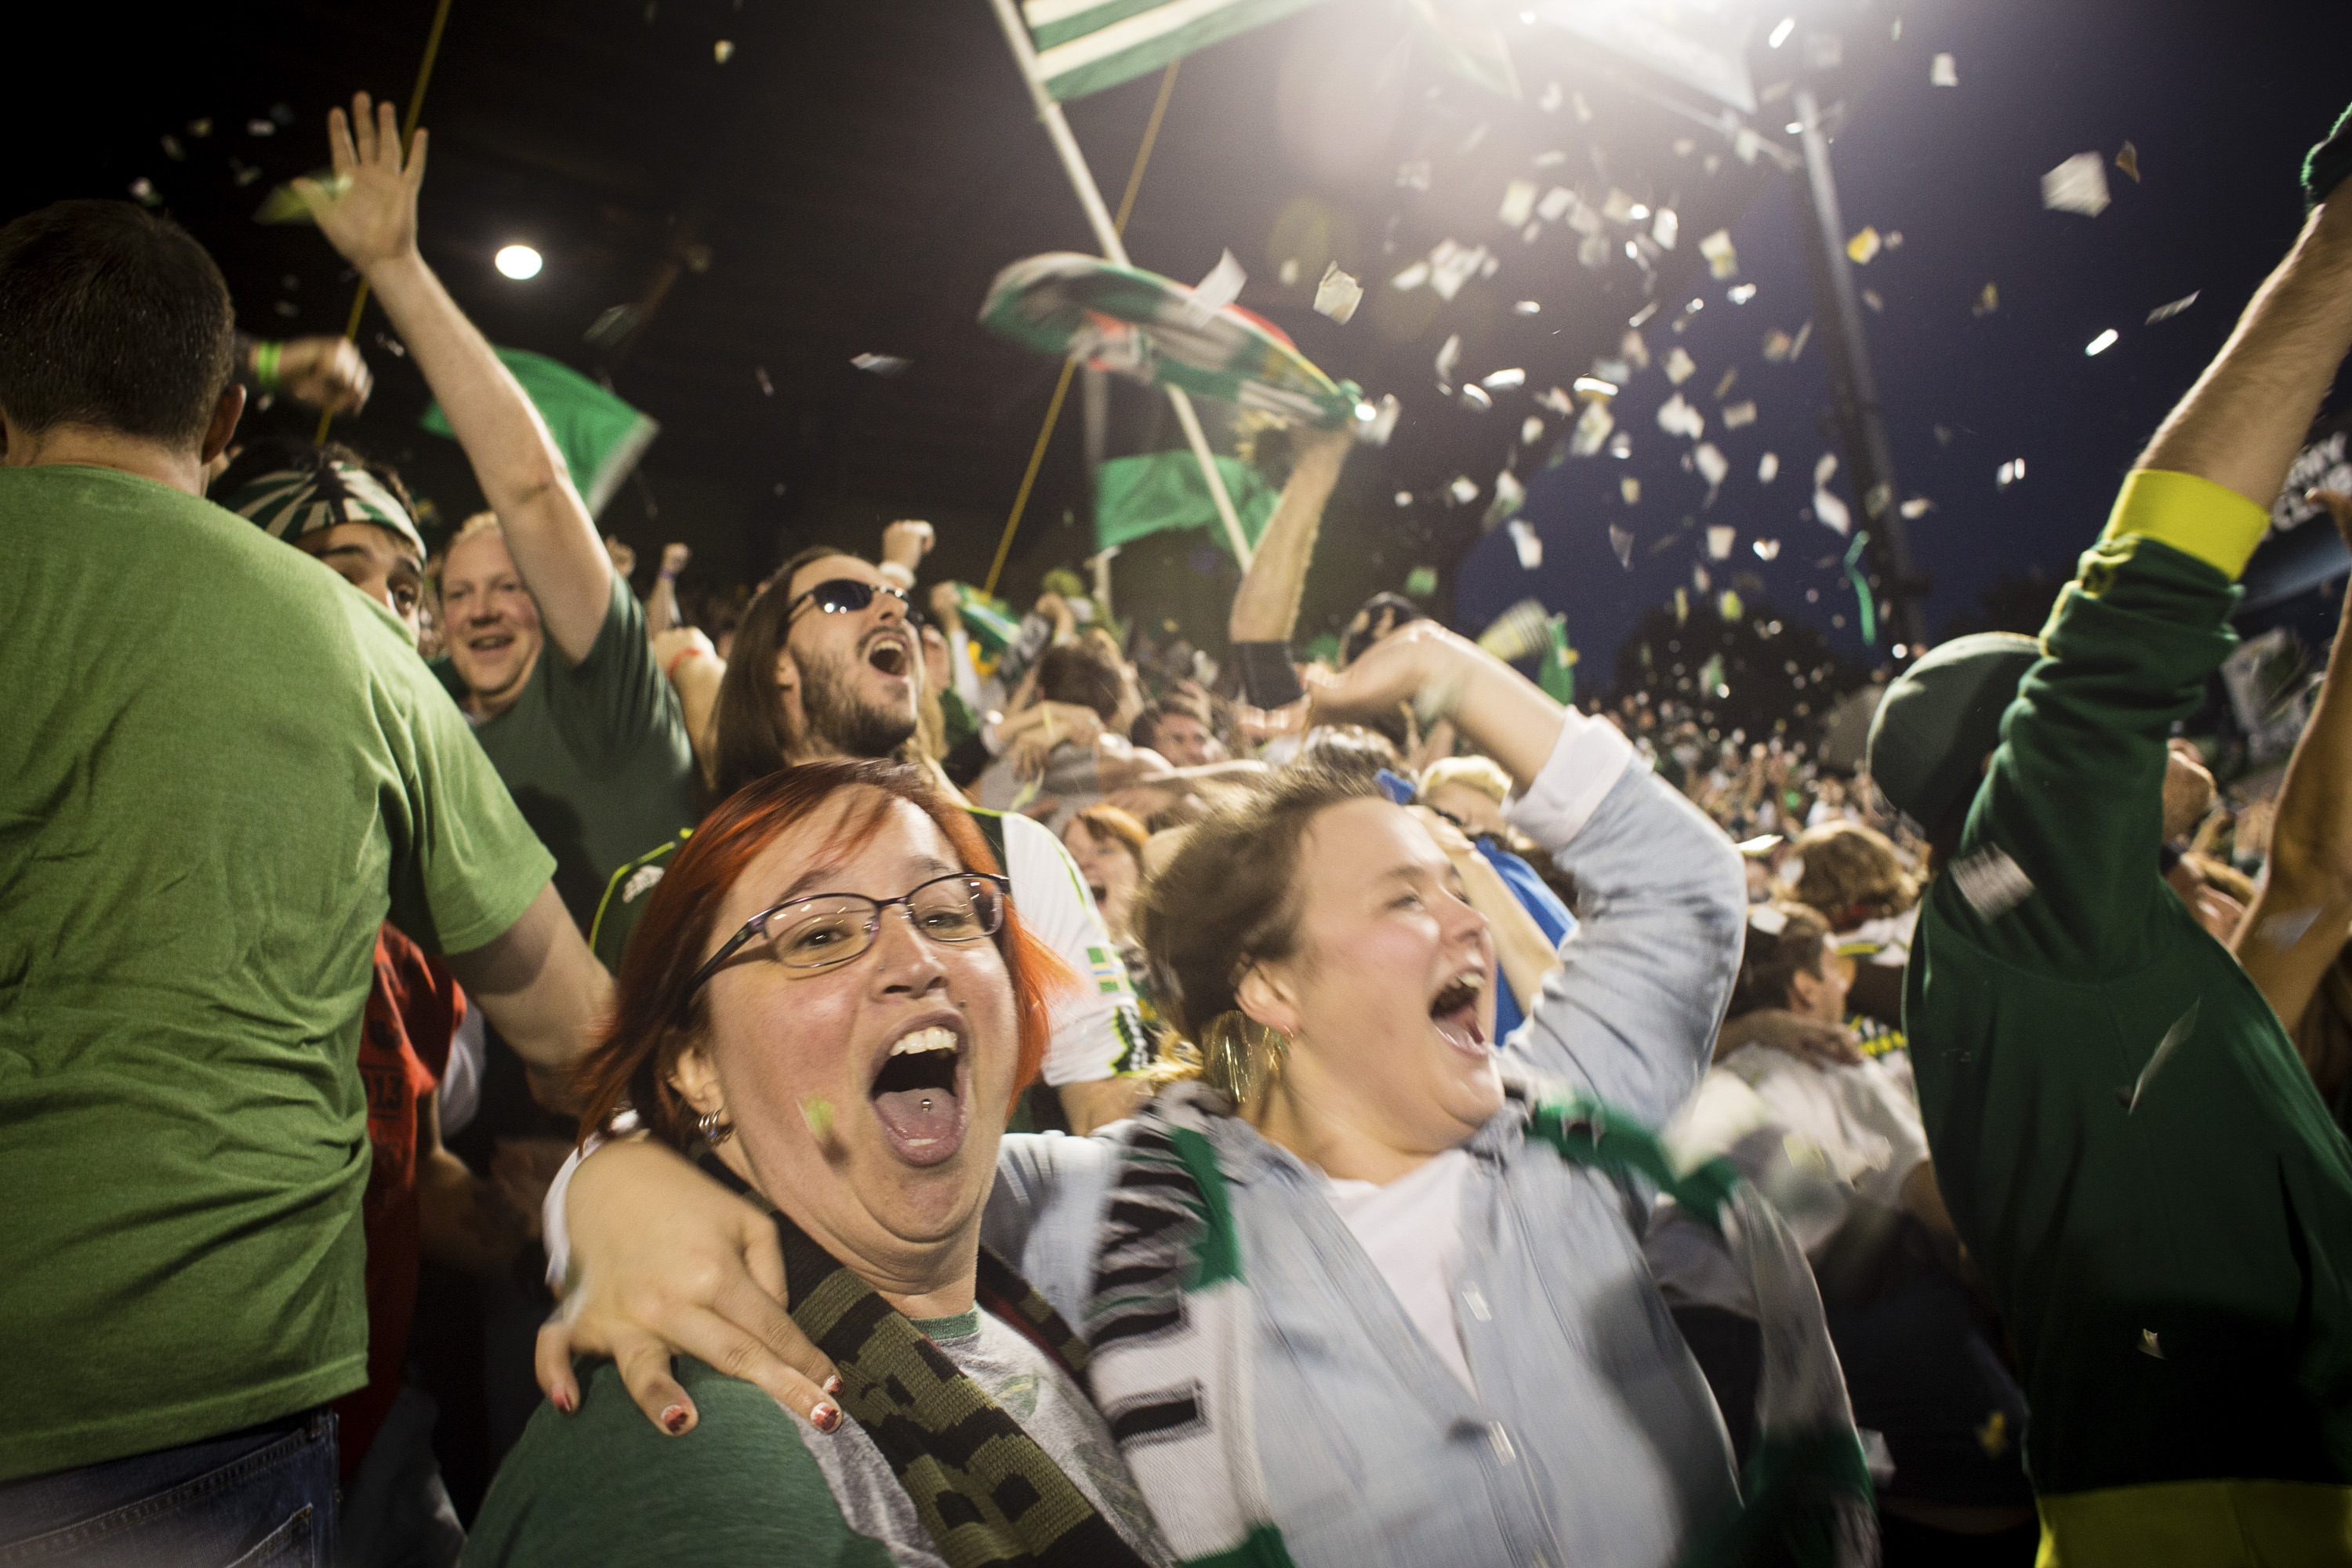 The crowd gets loud as members of the Timbers Army, Portland's fan club, celebrate a goal against the Seattle Sounders in Portland, Ore.